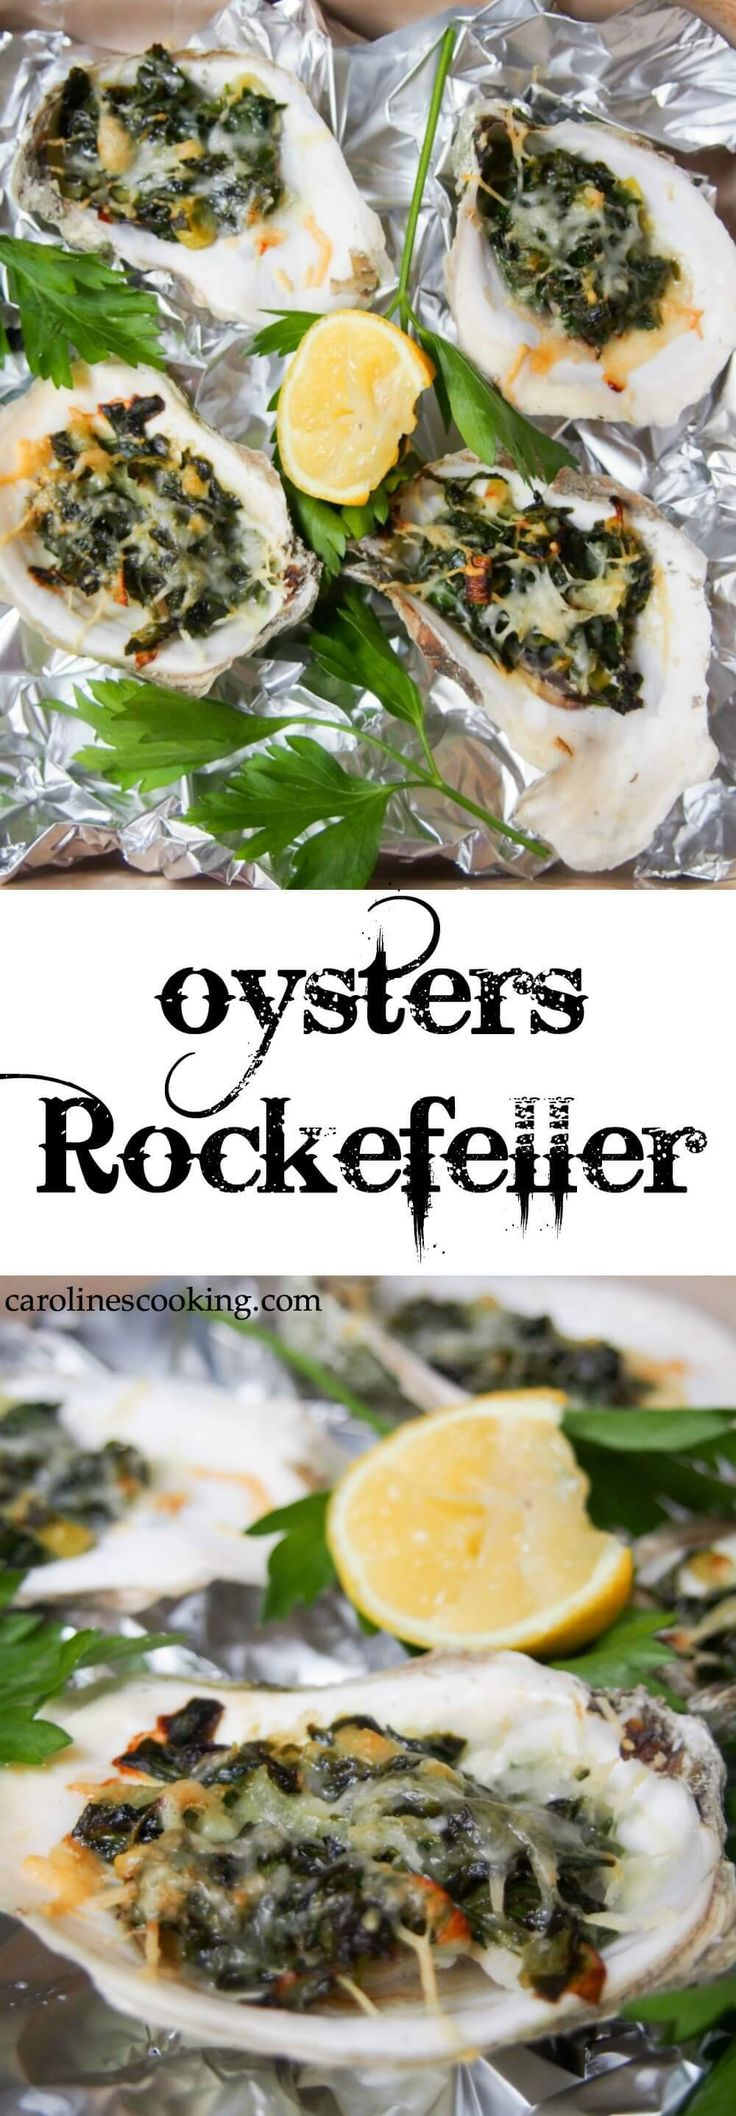 Oysters Rockefeller are a classic New Orleans appetizer. Here they're lightened up but packed with flavor in the spinach-based topping. Perfect for date night, a fancy dinner party or any excuse. Includes video tutorial with how to shuck an oyster. #SundaySupper